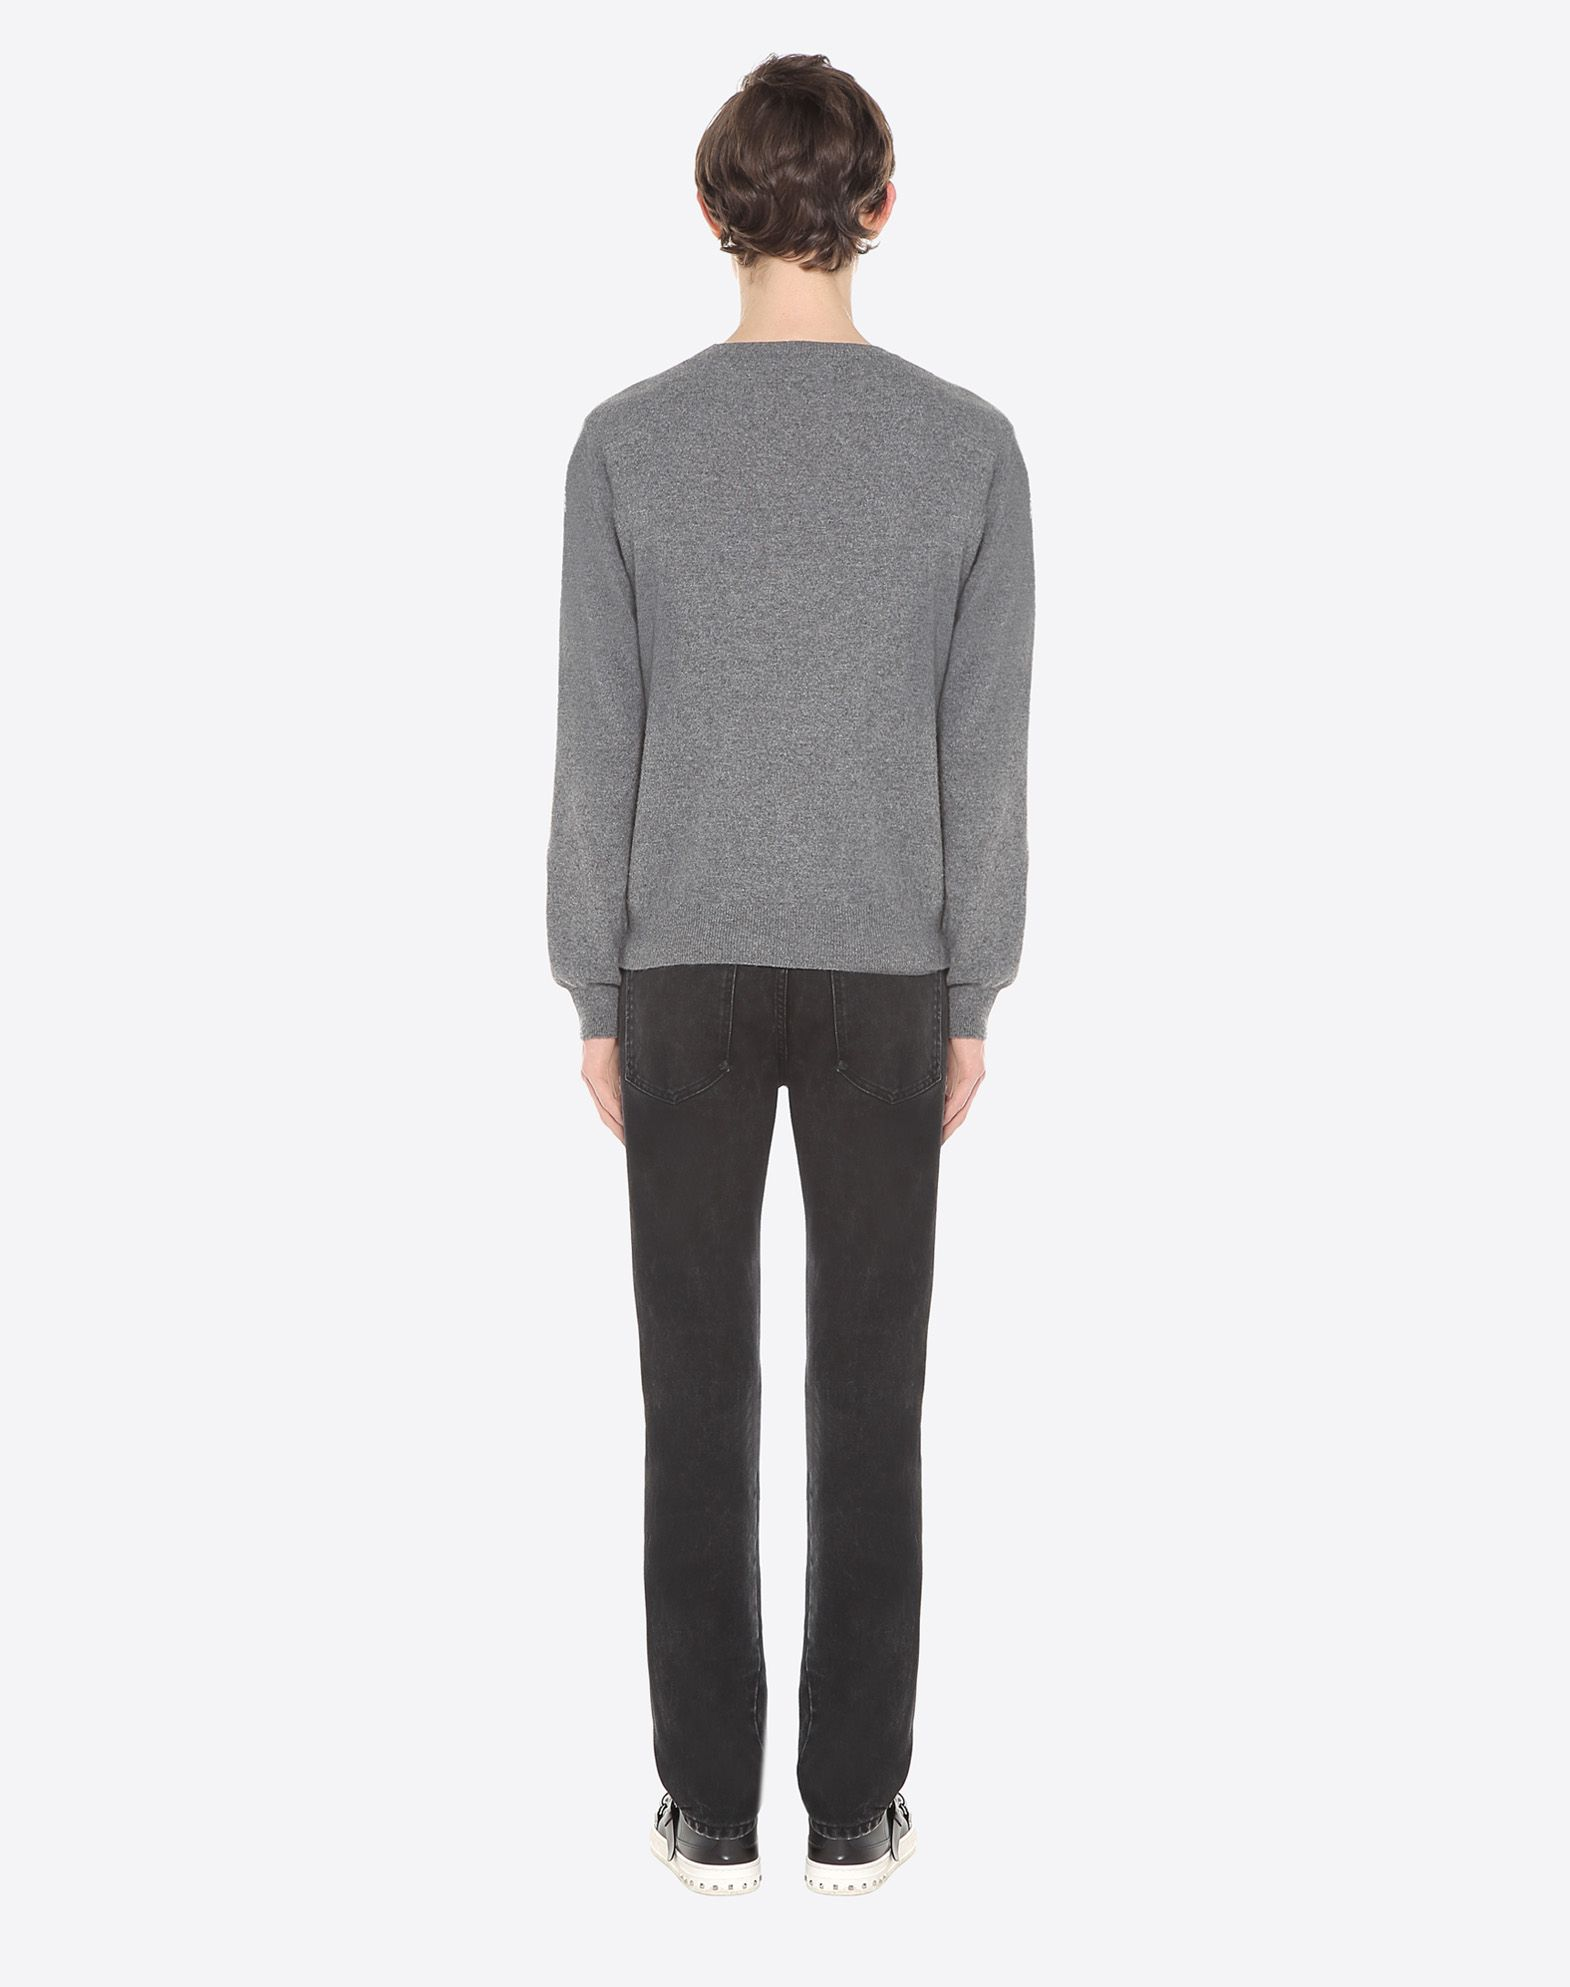 VALENTINO Lightweight knitted Round collar Long sleeves  12027439xx